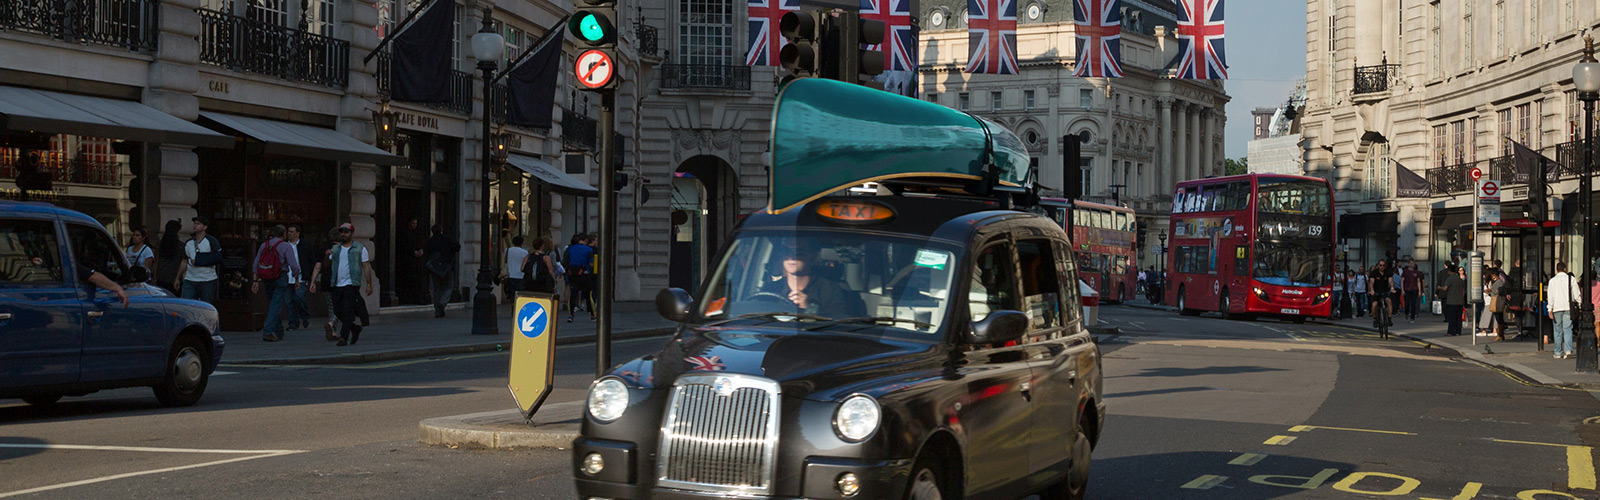 Canadian canoe on London cab roof